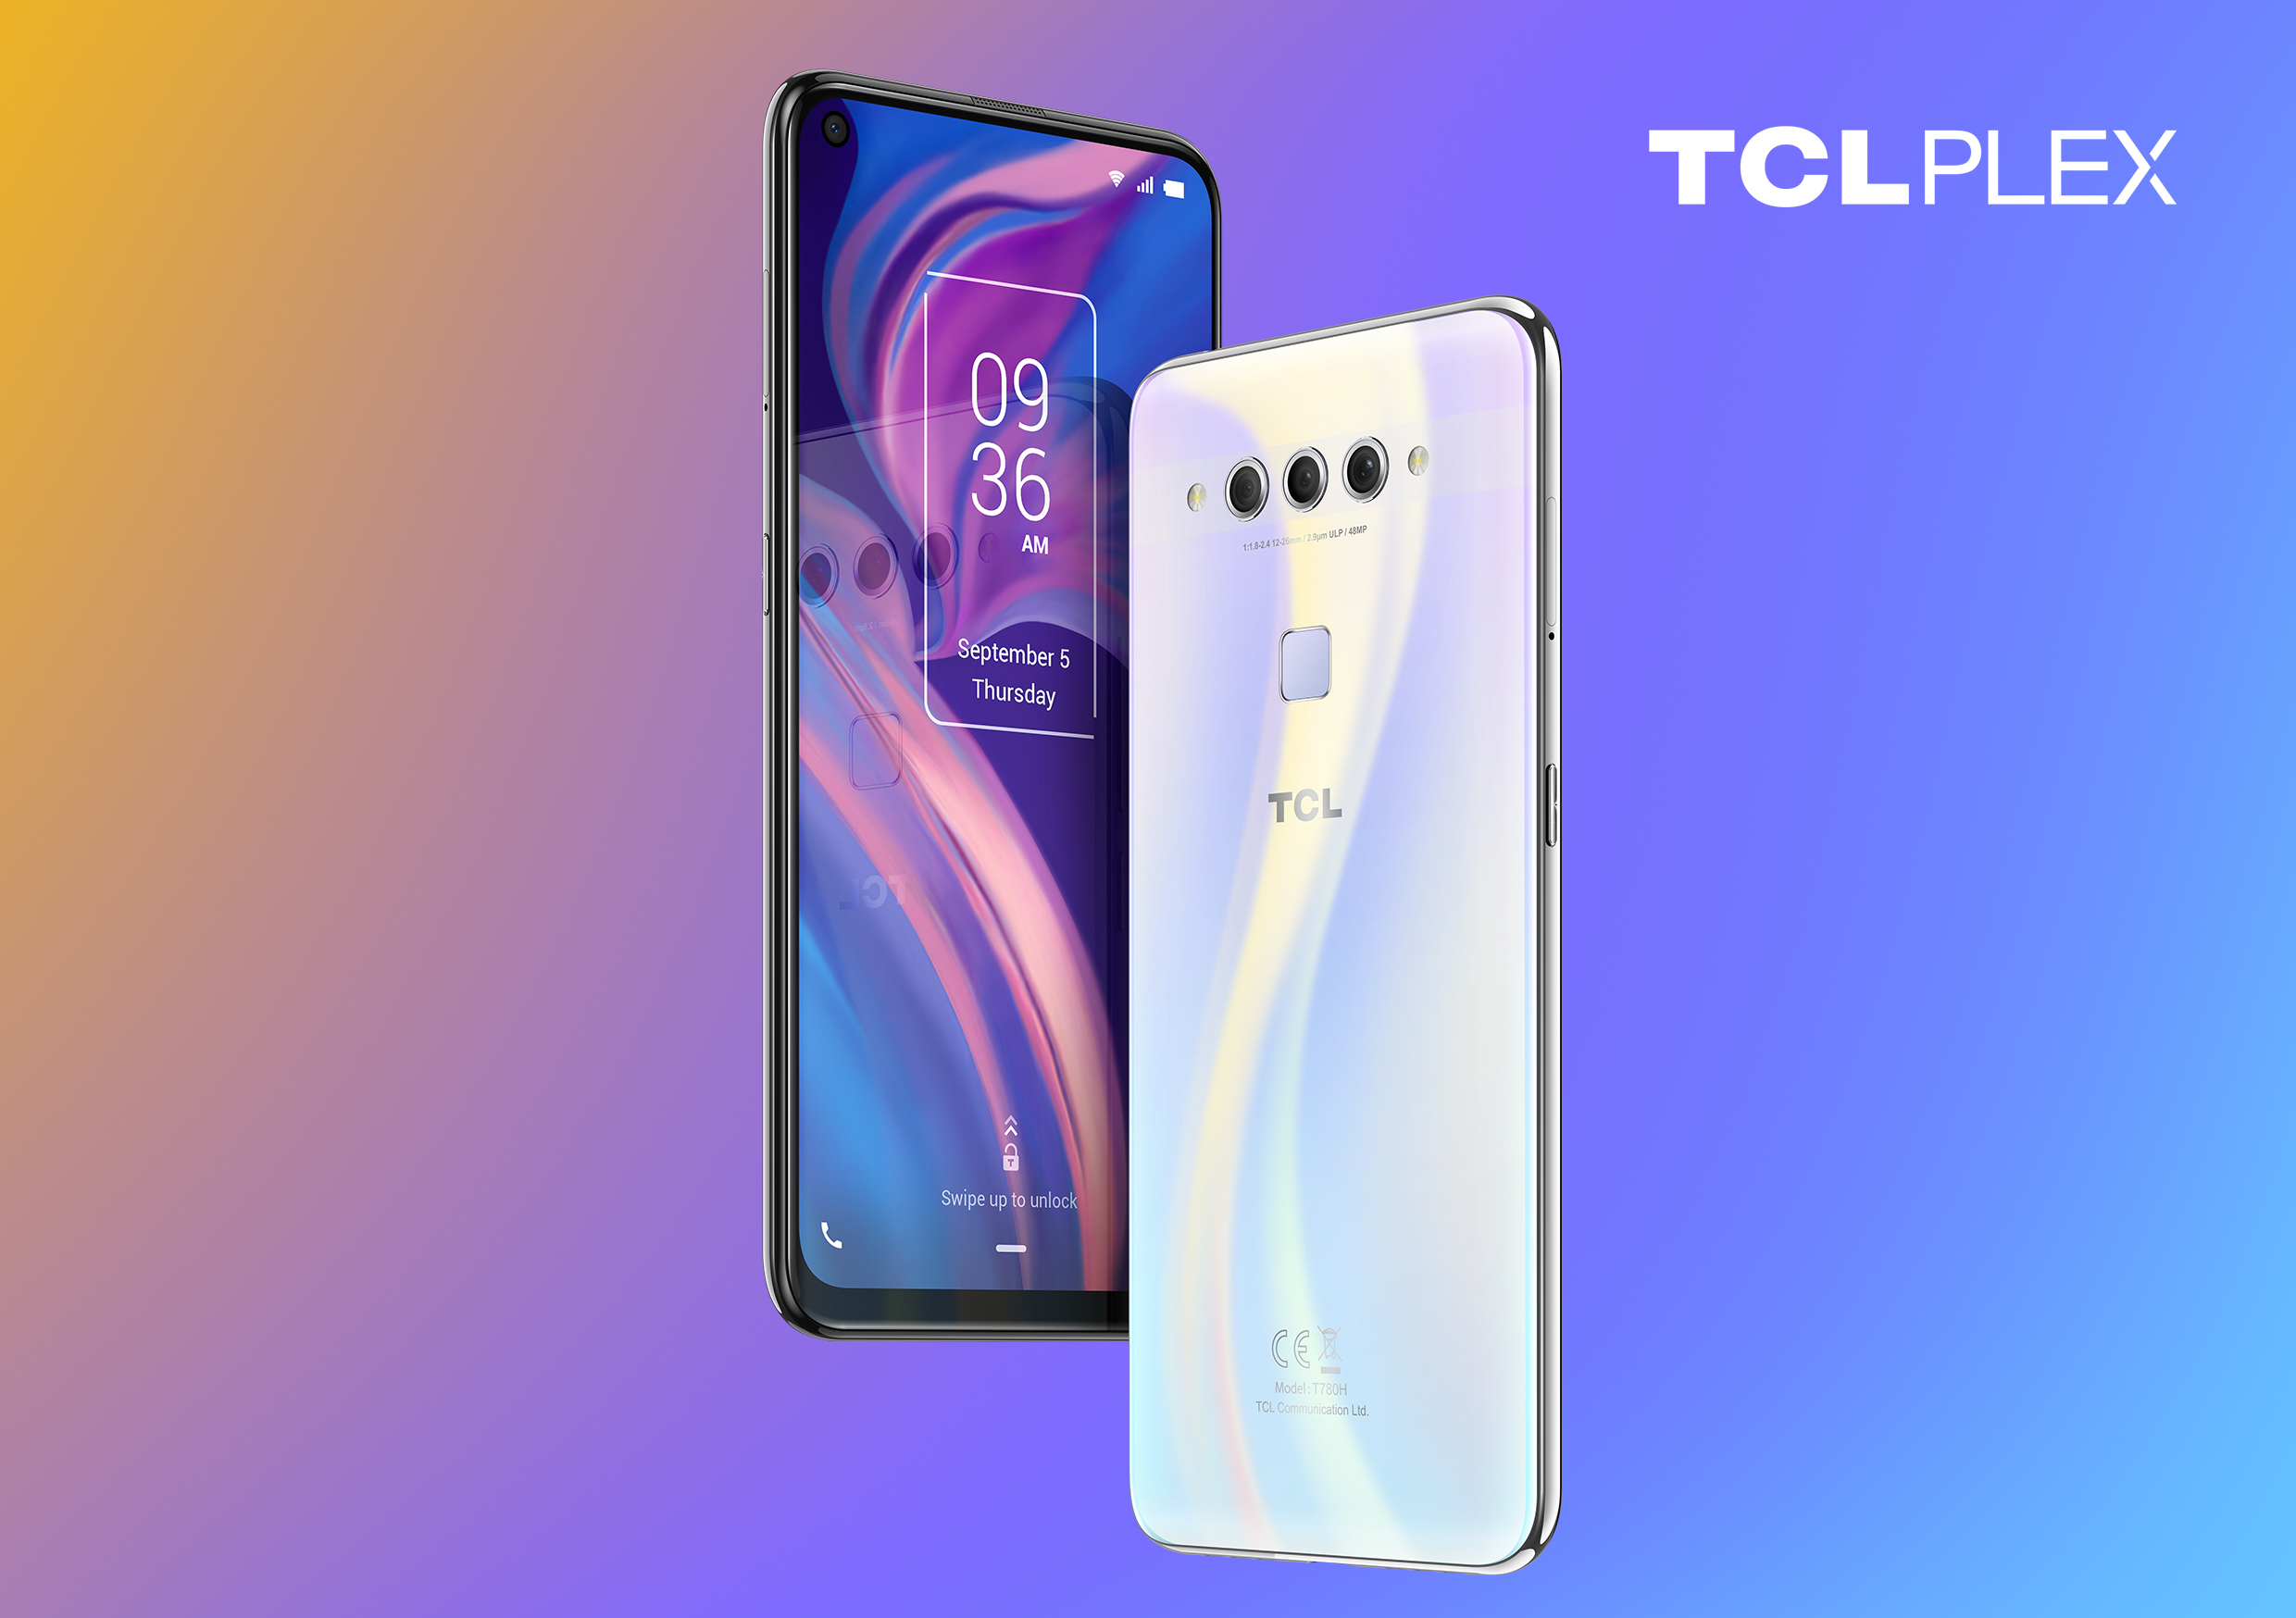 TCL launches PLEX, its first branded smartphone